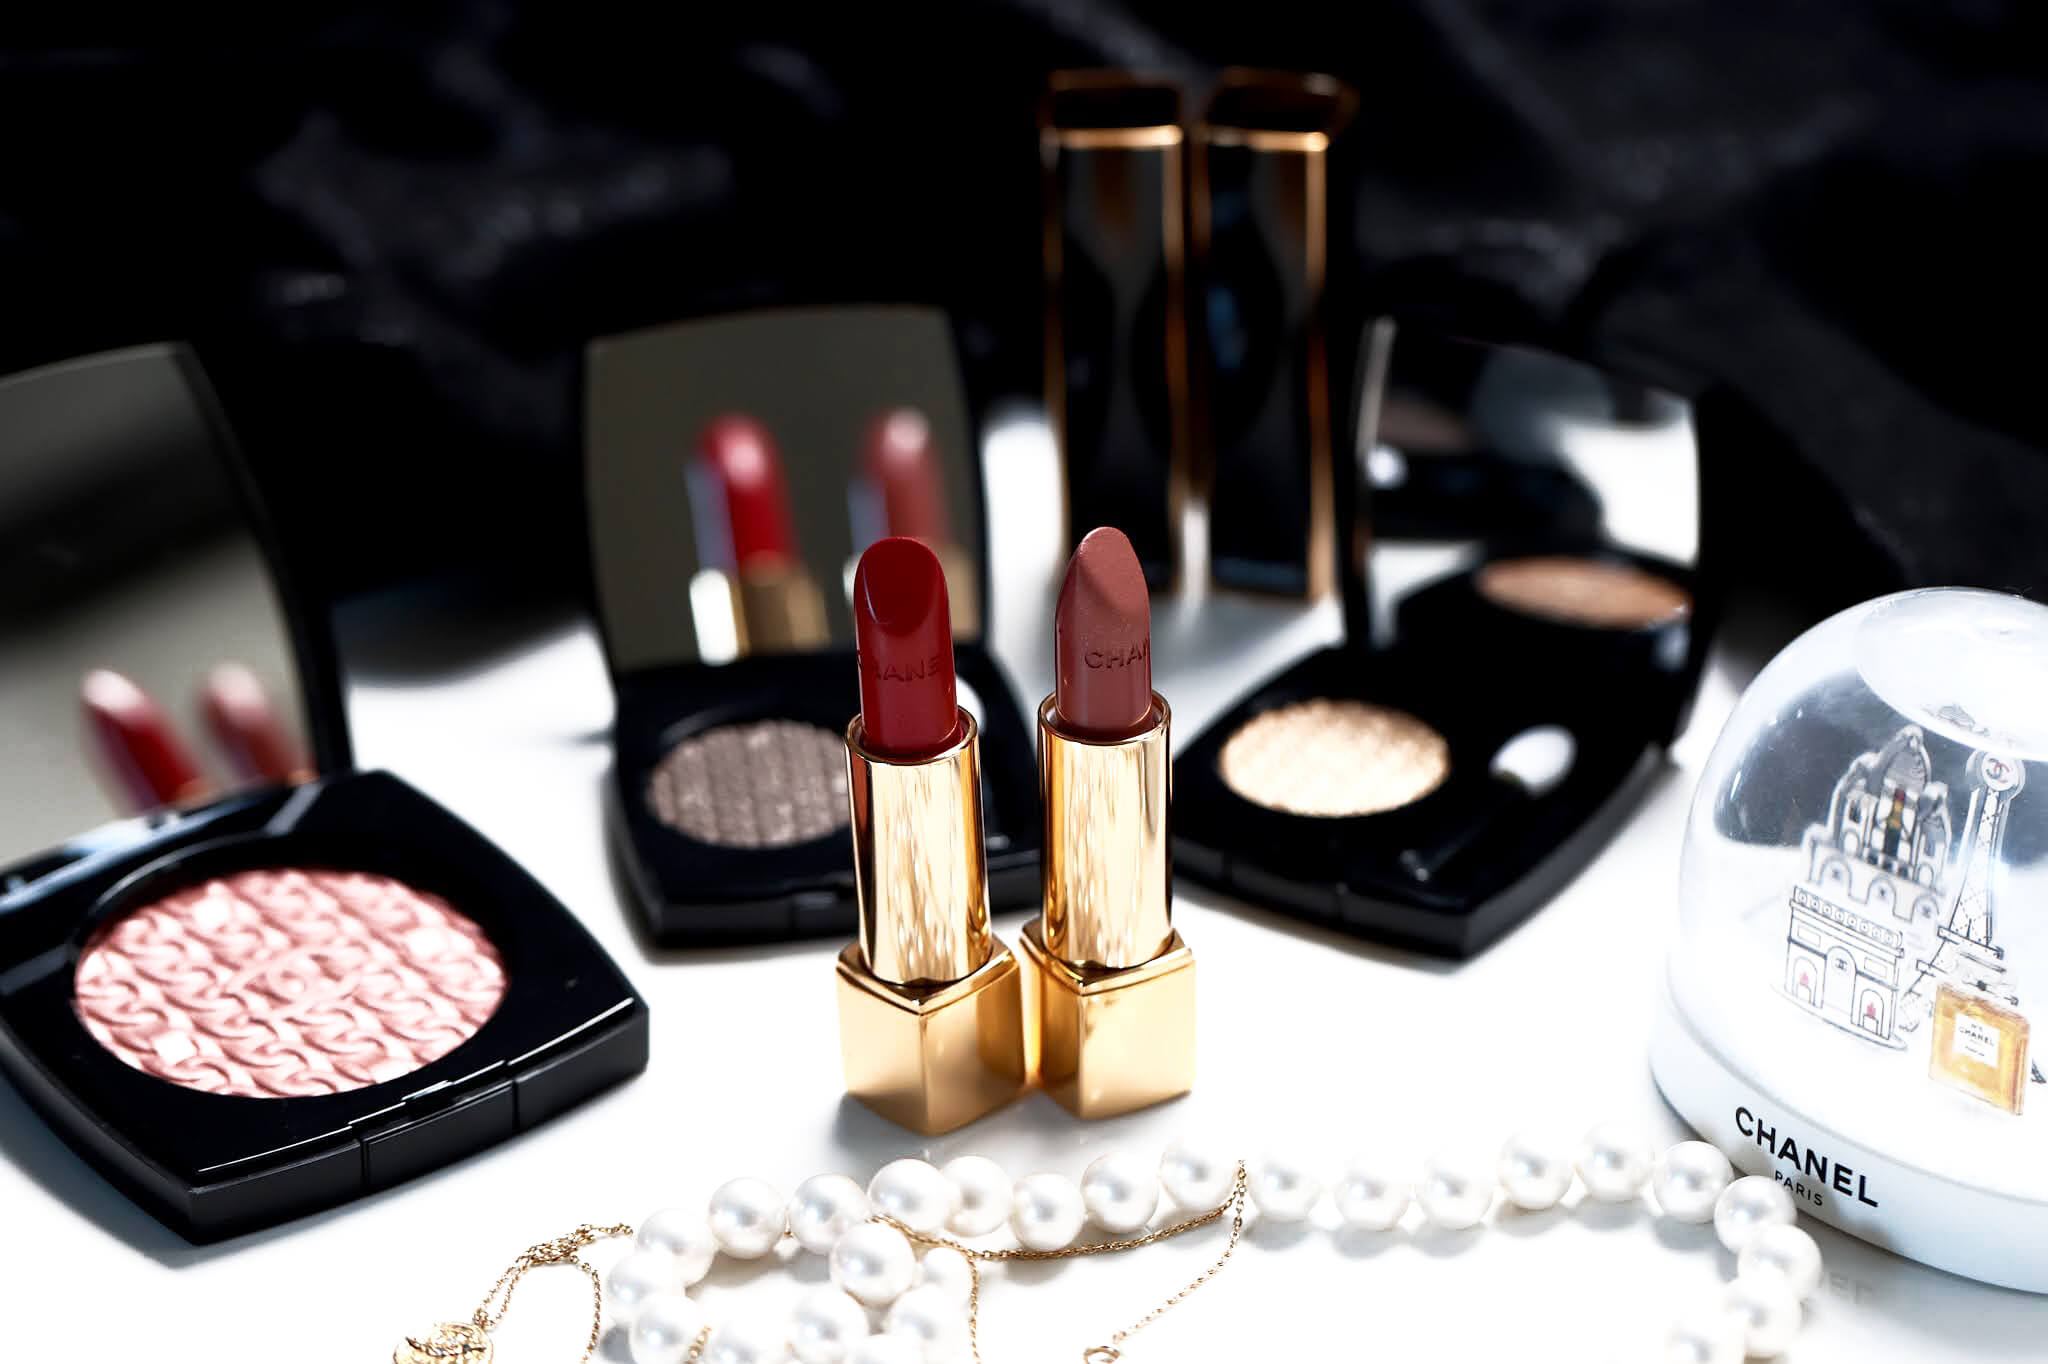 Chanel Rouge Allure 107 Or Beige 127 Rouge d'Or